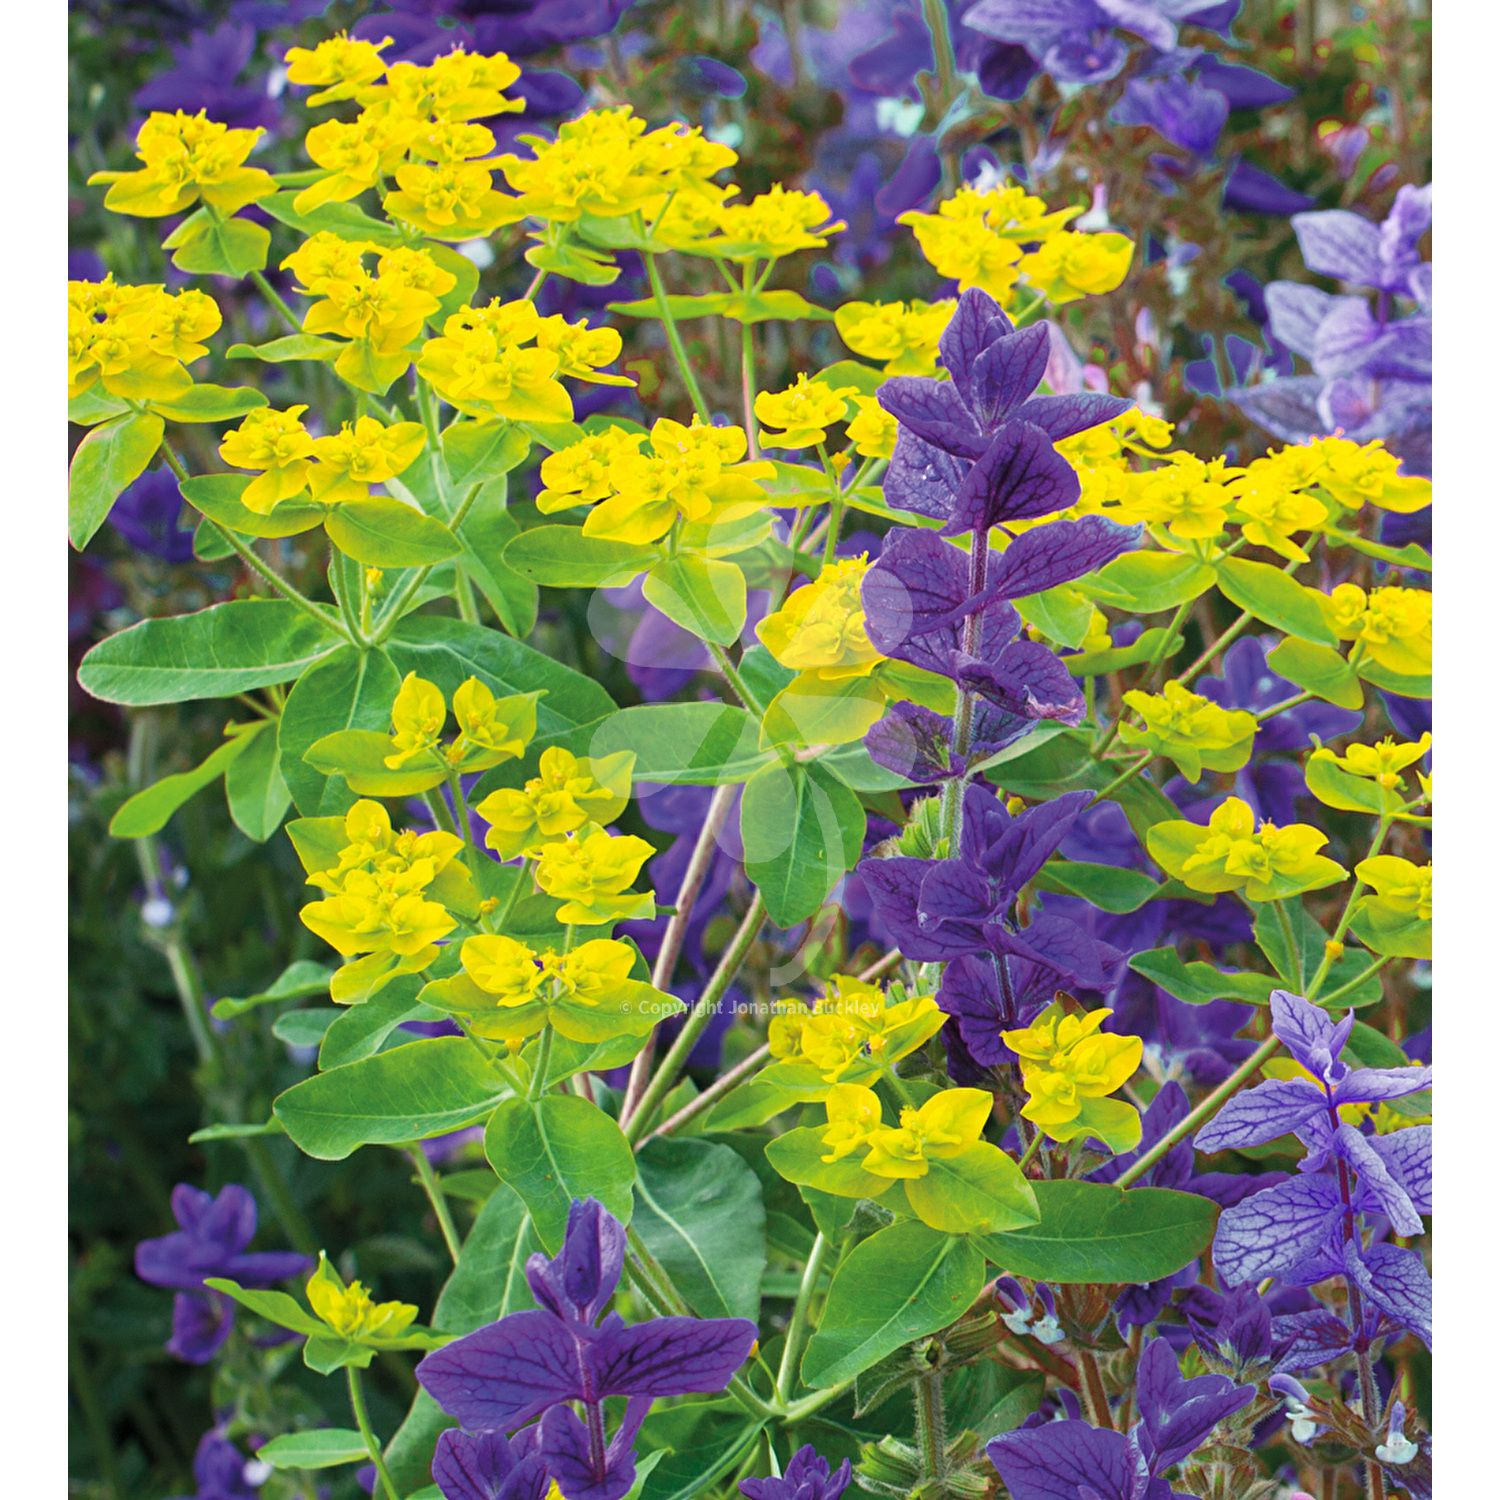 Salvia Euphorbia 2 Of The Best Foliage Annuals To Edge A Path